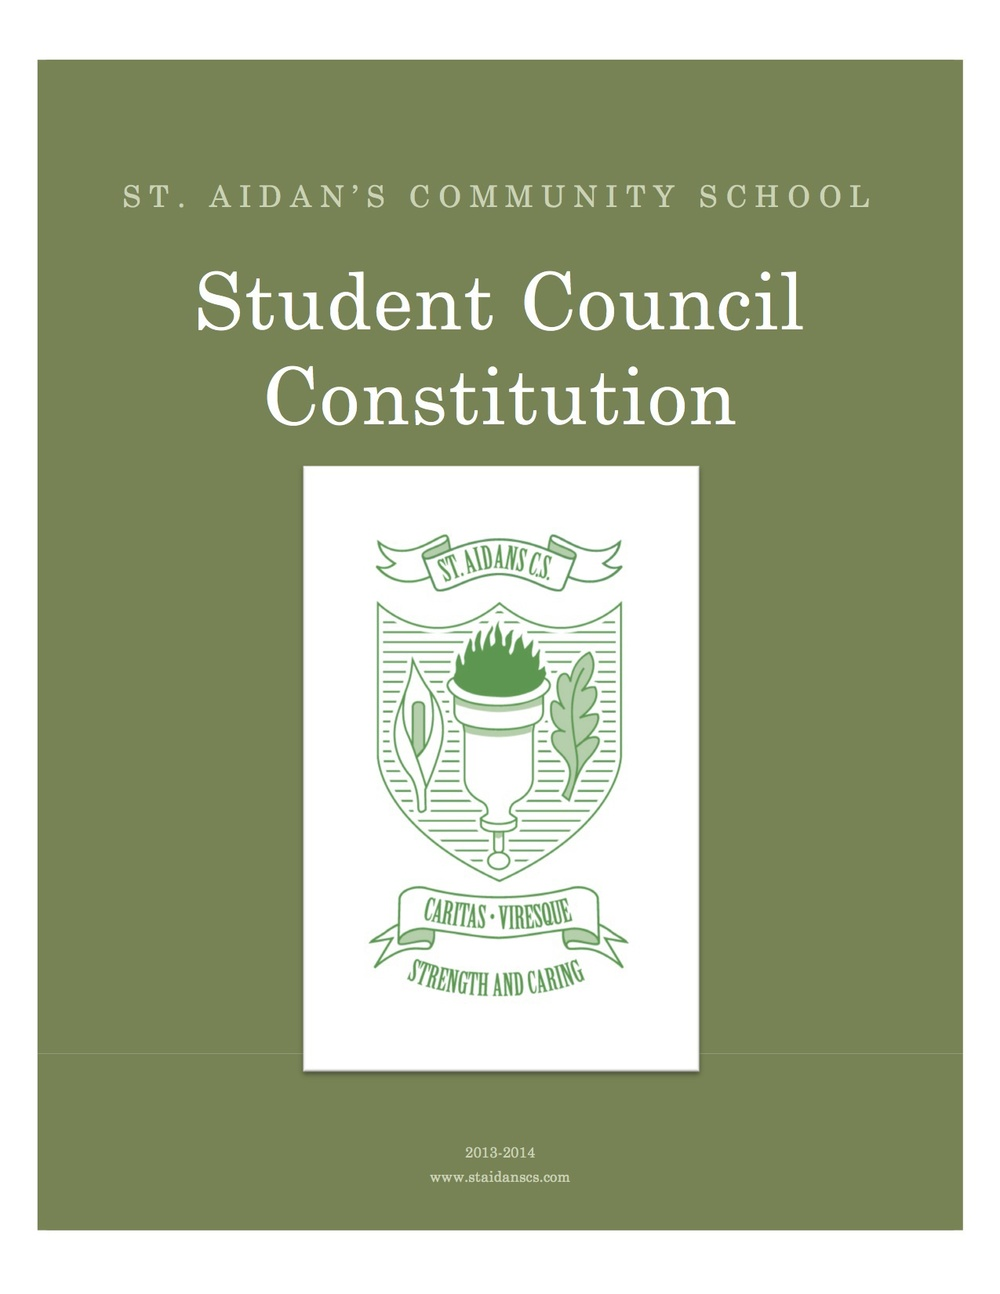 Student Council Constitution Doc1.jpg